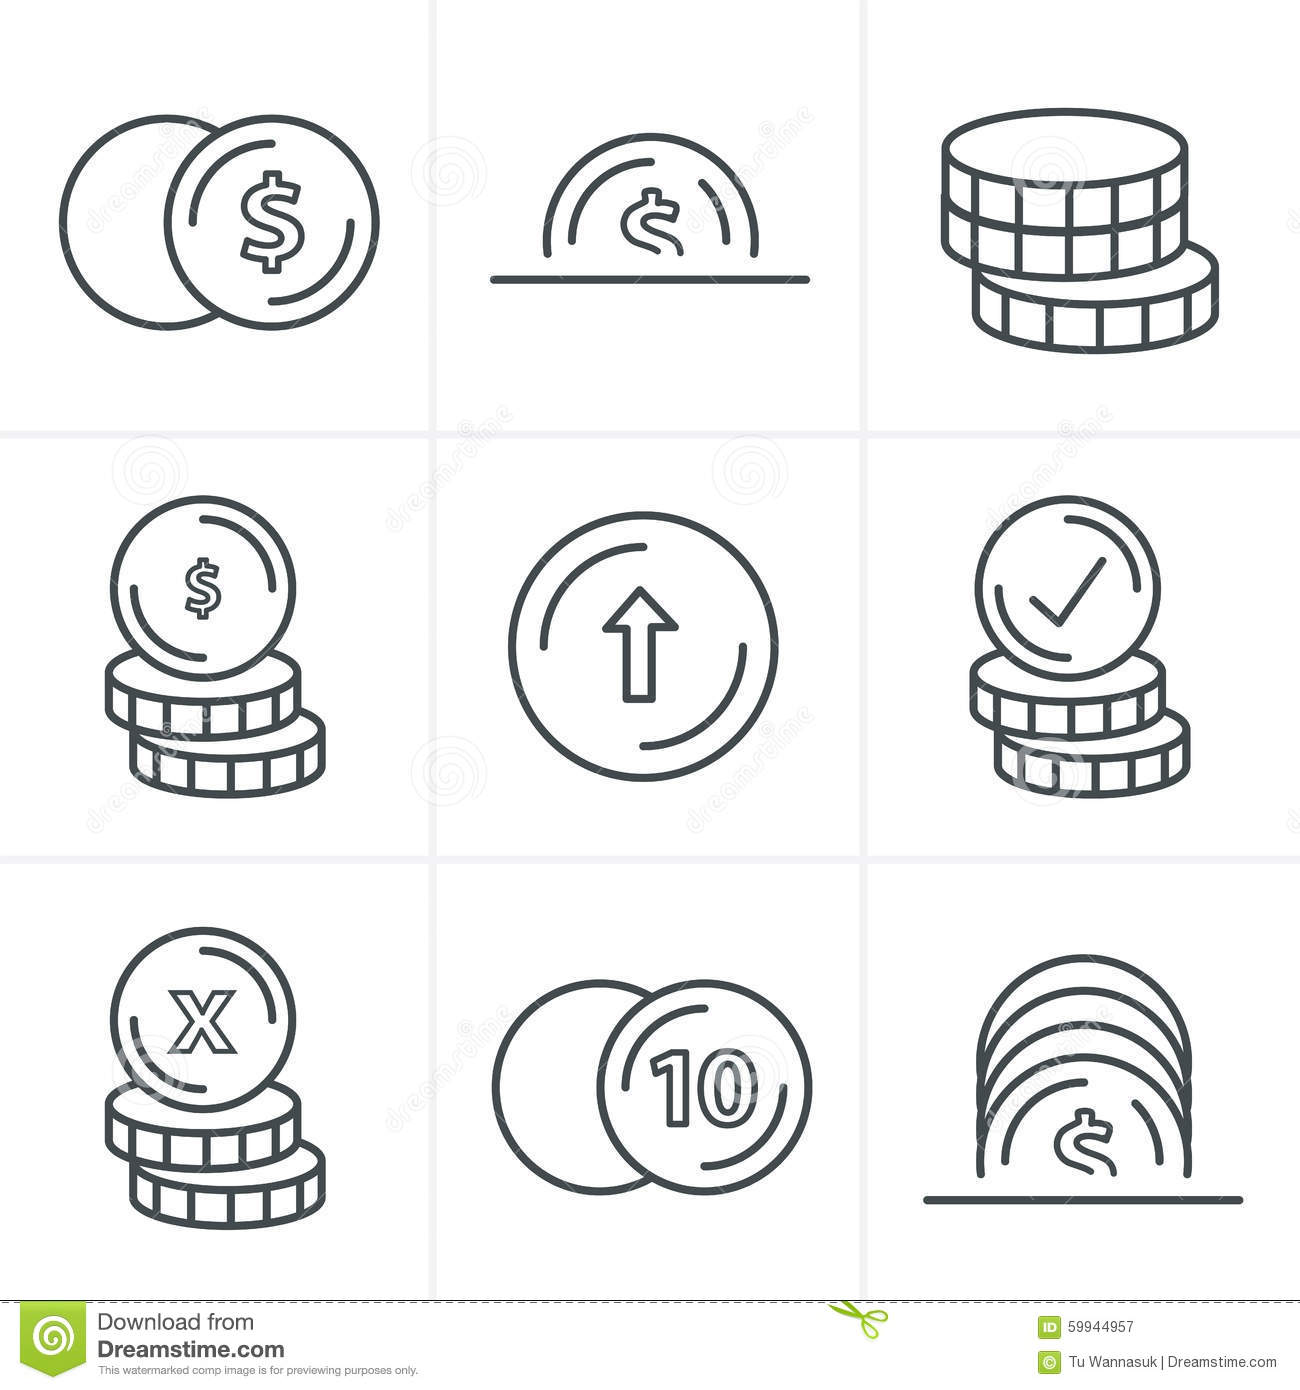 Line icons style coins icons set stock vector illustration of line icons style coins icons set ccuart Gallery